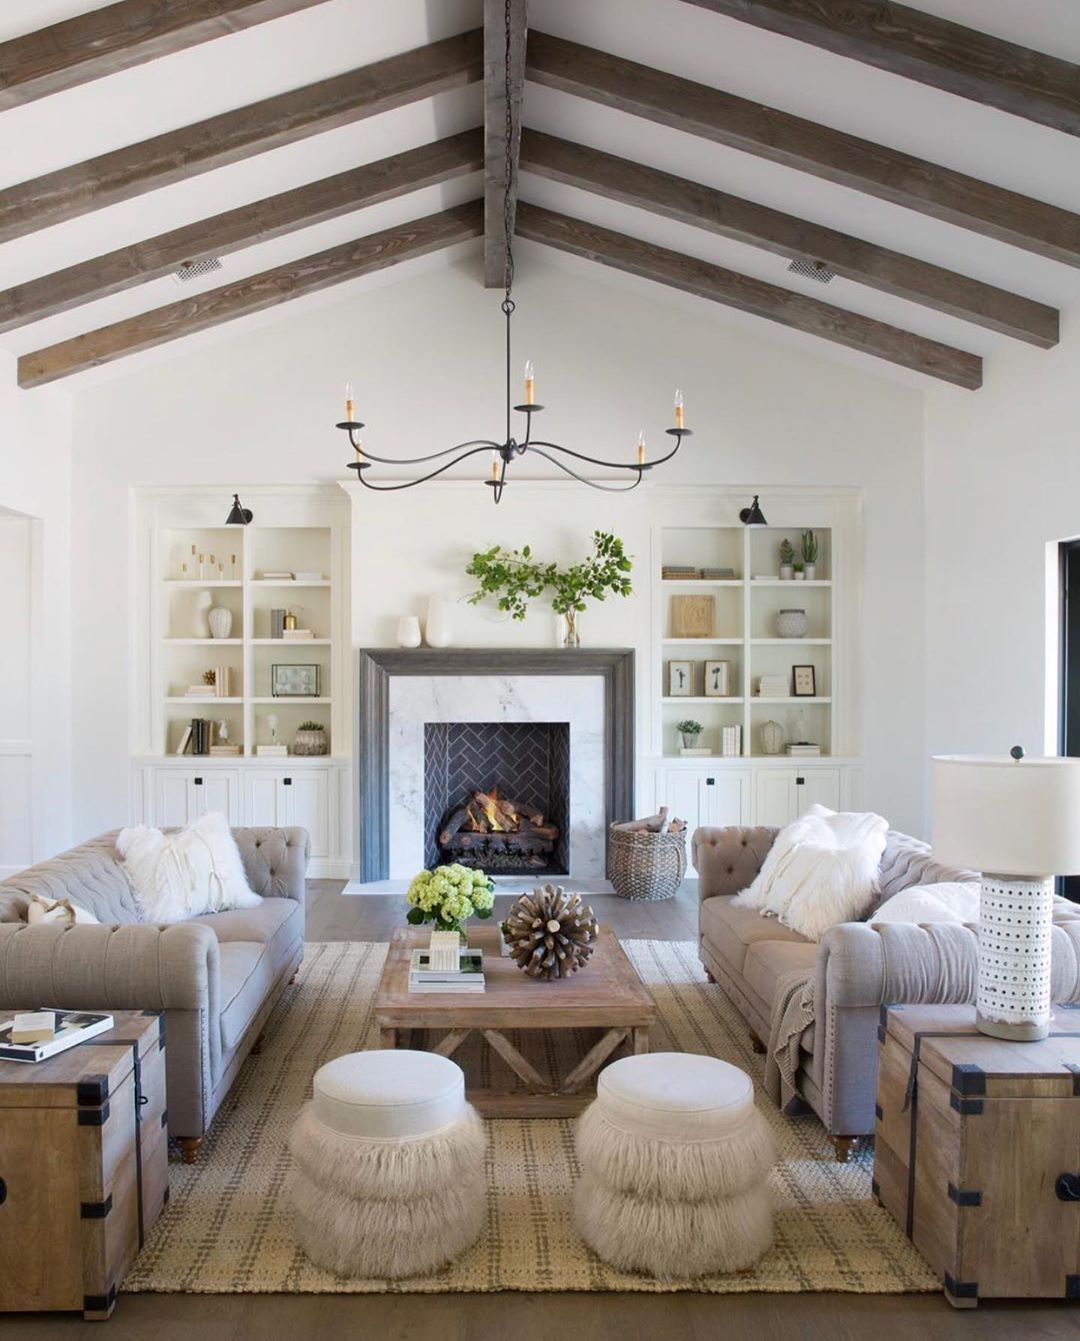 M M Lighting On Instagram Whatever You Do Do It Well Design Jaimeeroseinteriors Ho In 2020 Vaulted Ceiling Living Room Living Room Remodel Living Room Lighting #vaulted #ceiling #living #room #lighting